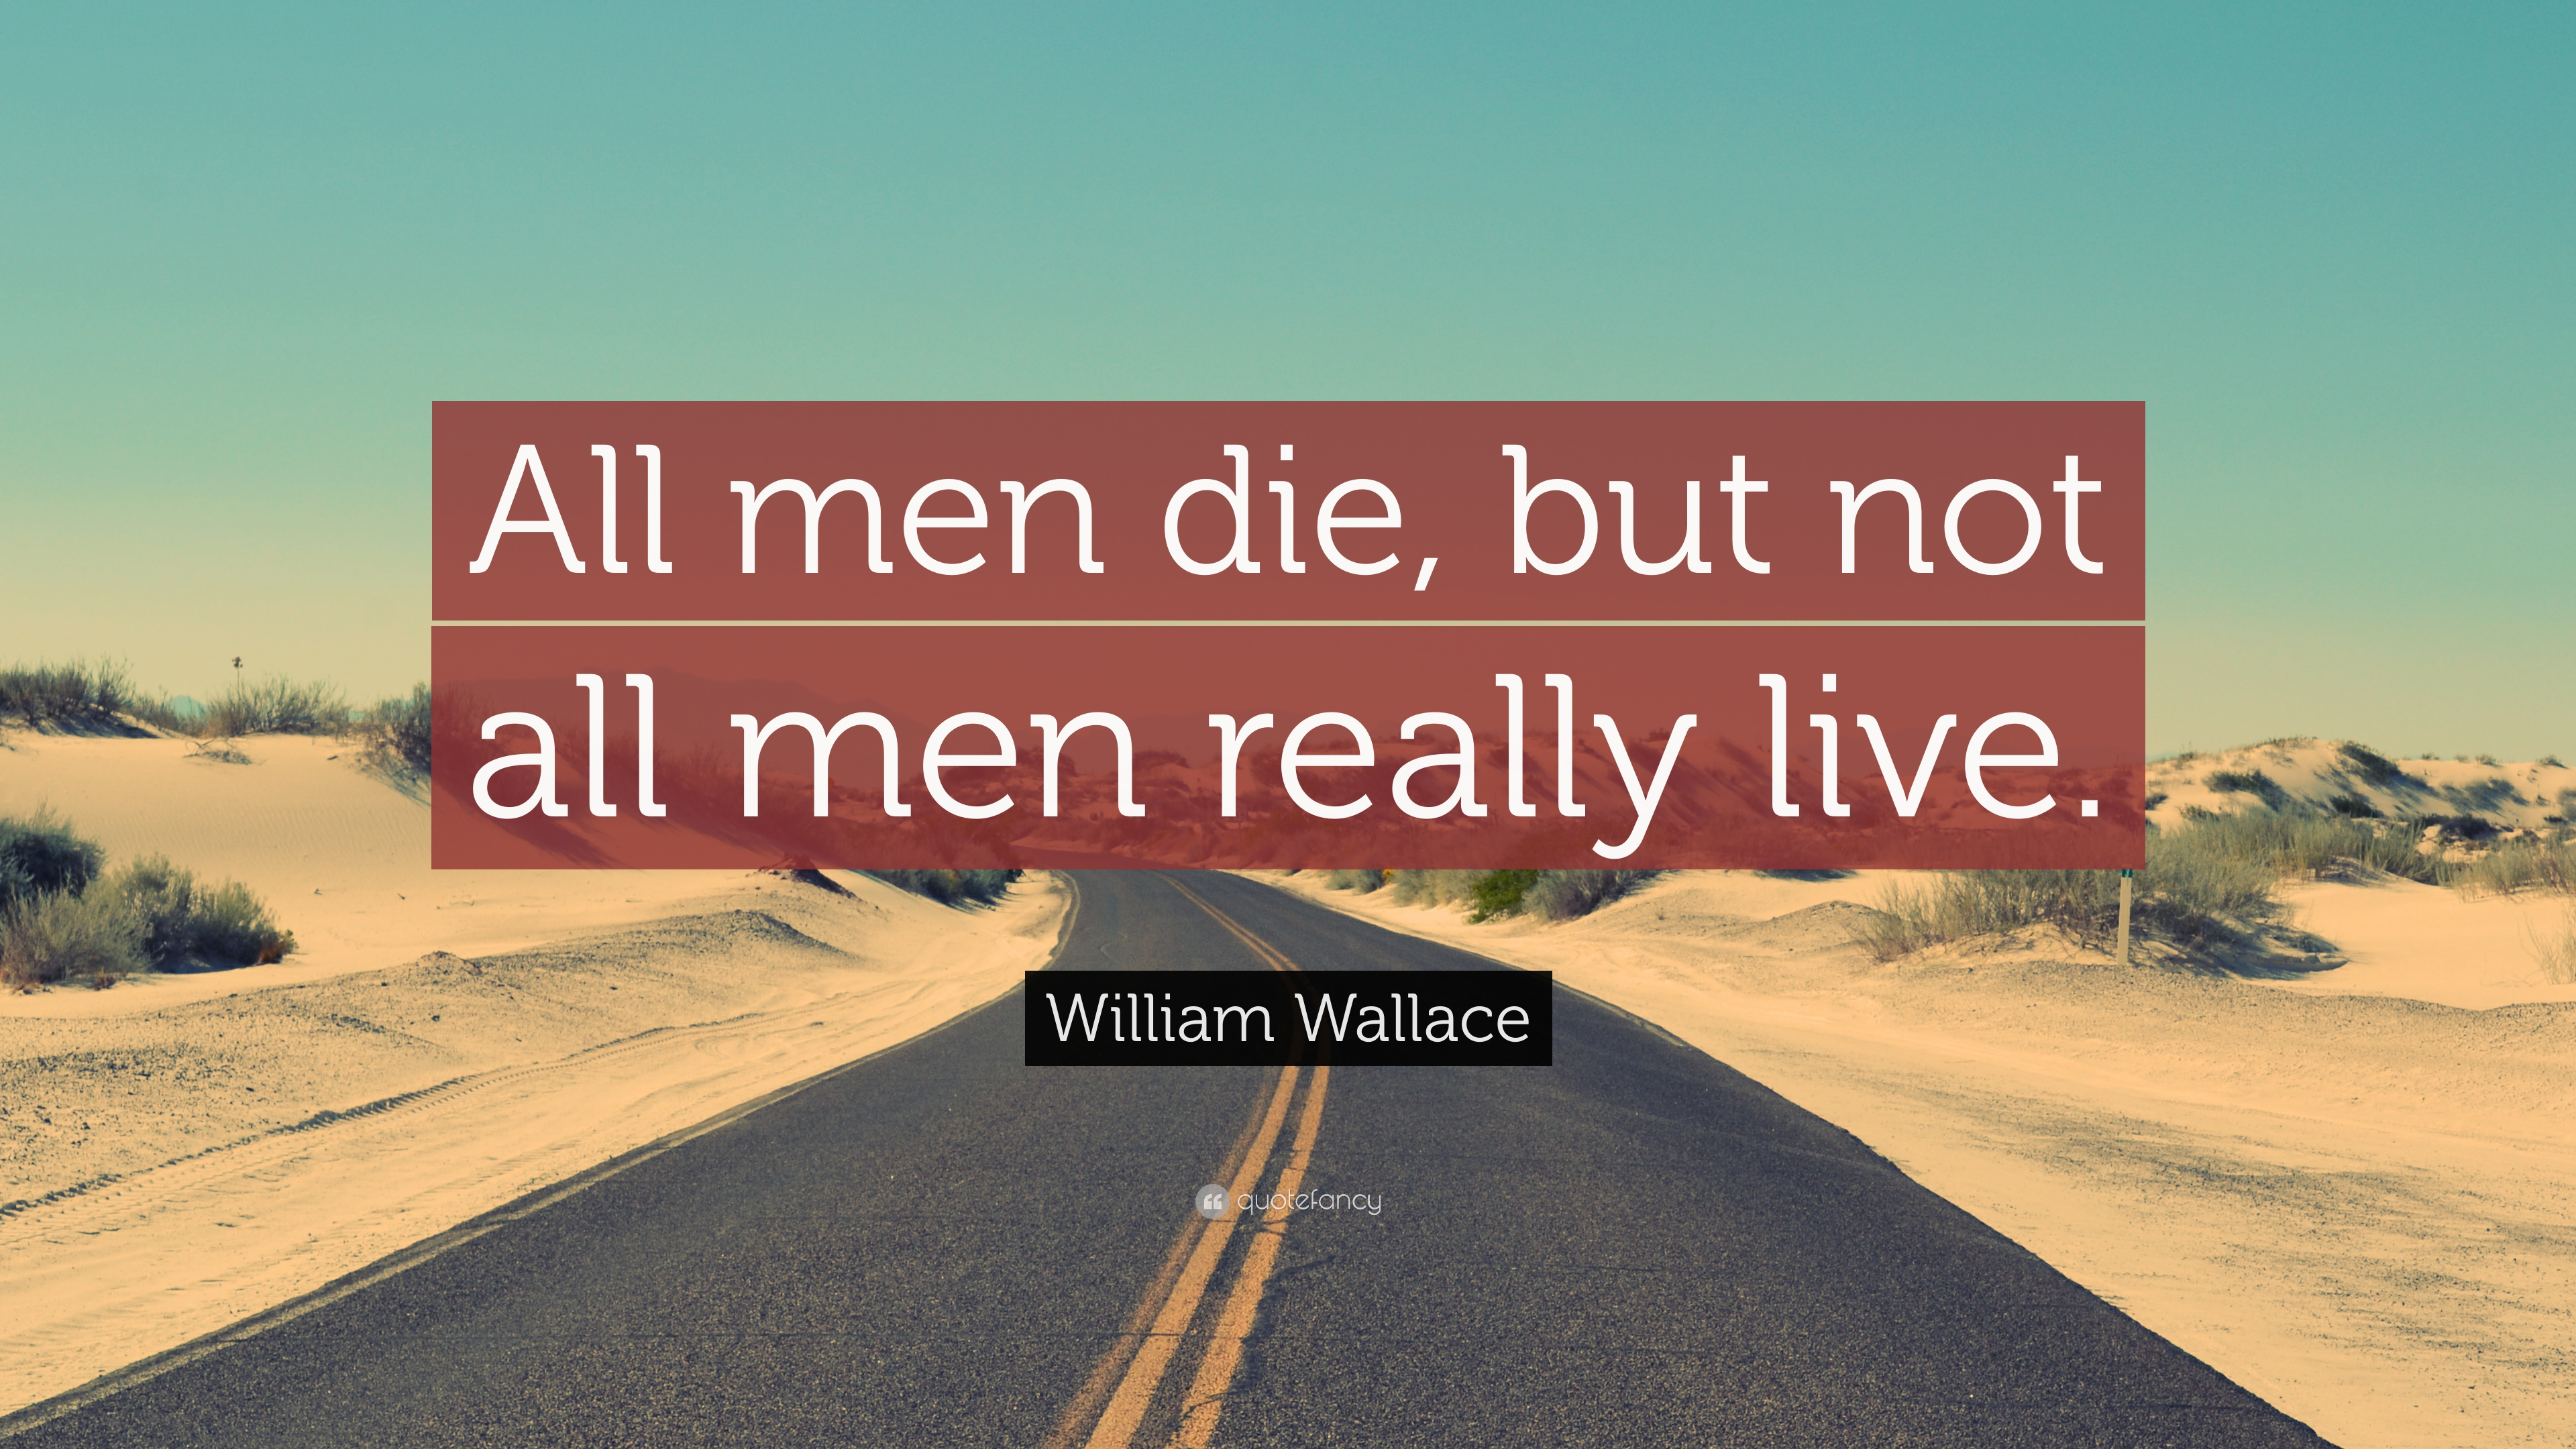 William Wallace Quotes (18 wallpapers) - Quotefancy